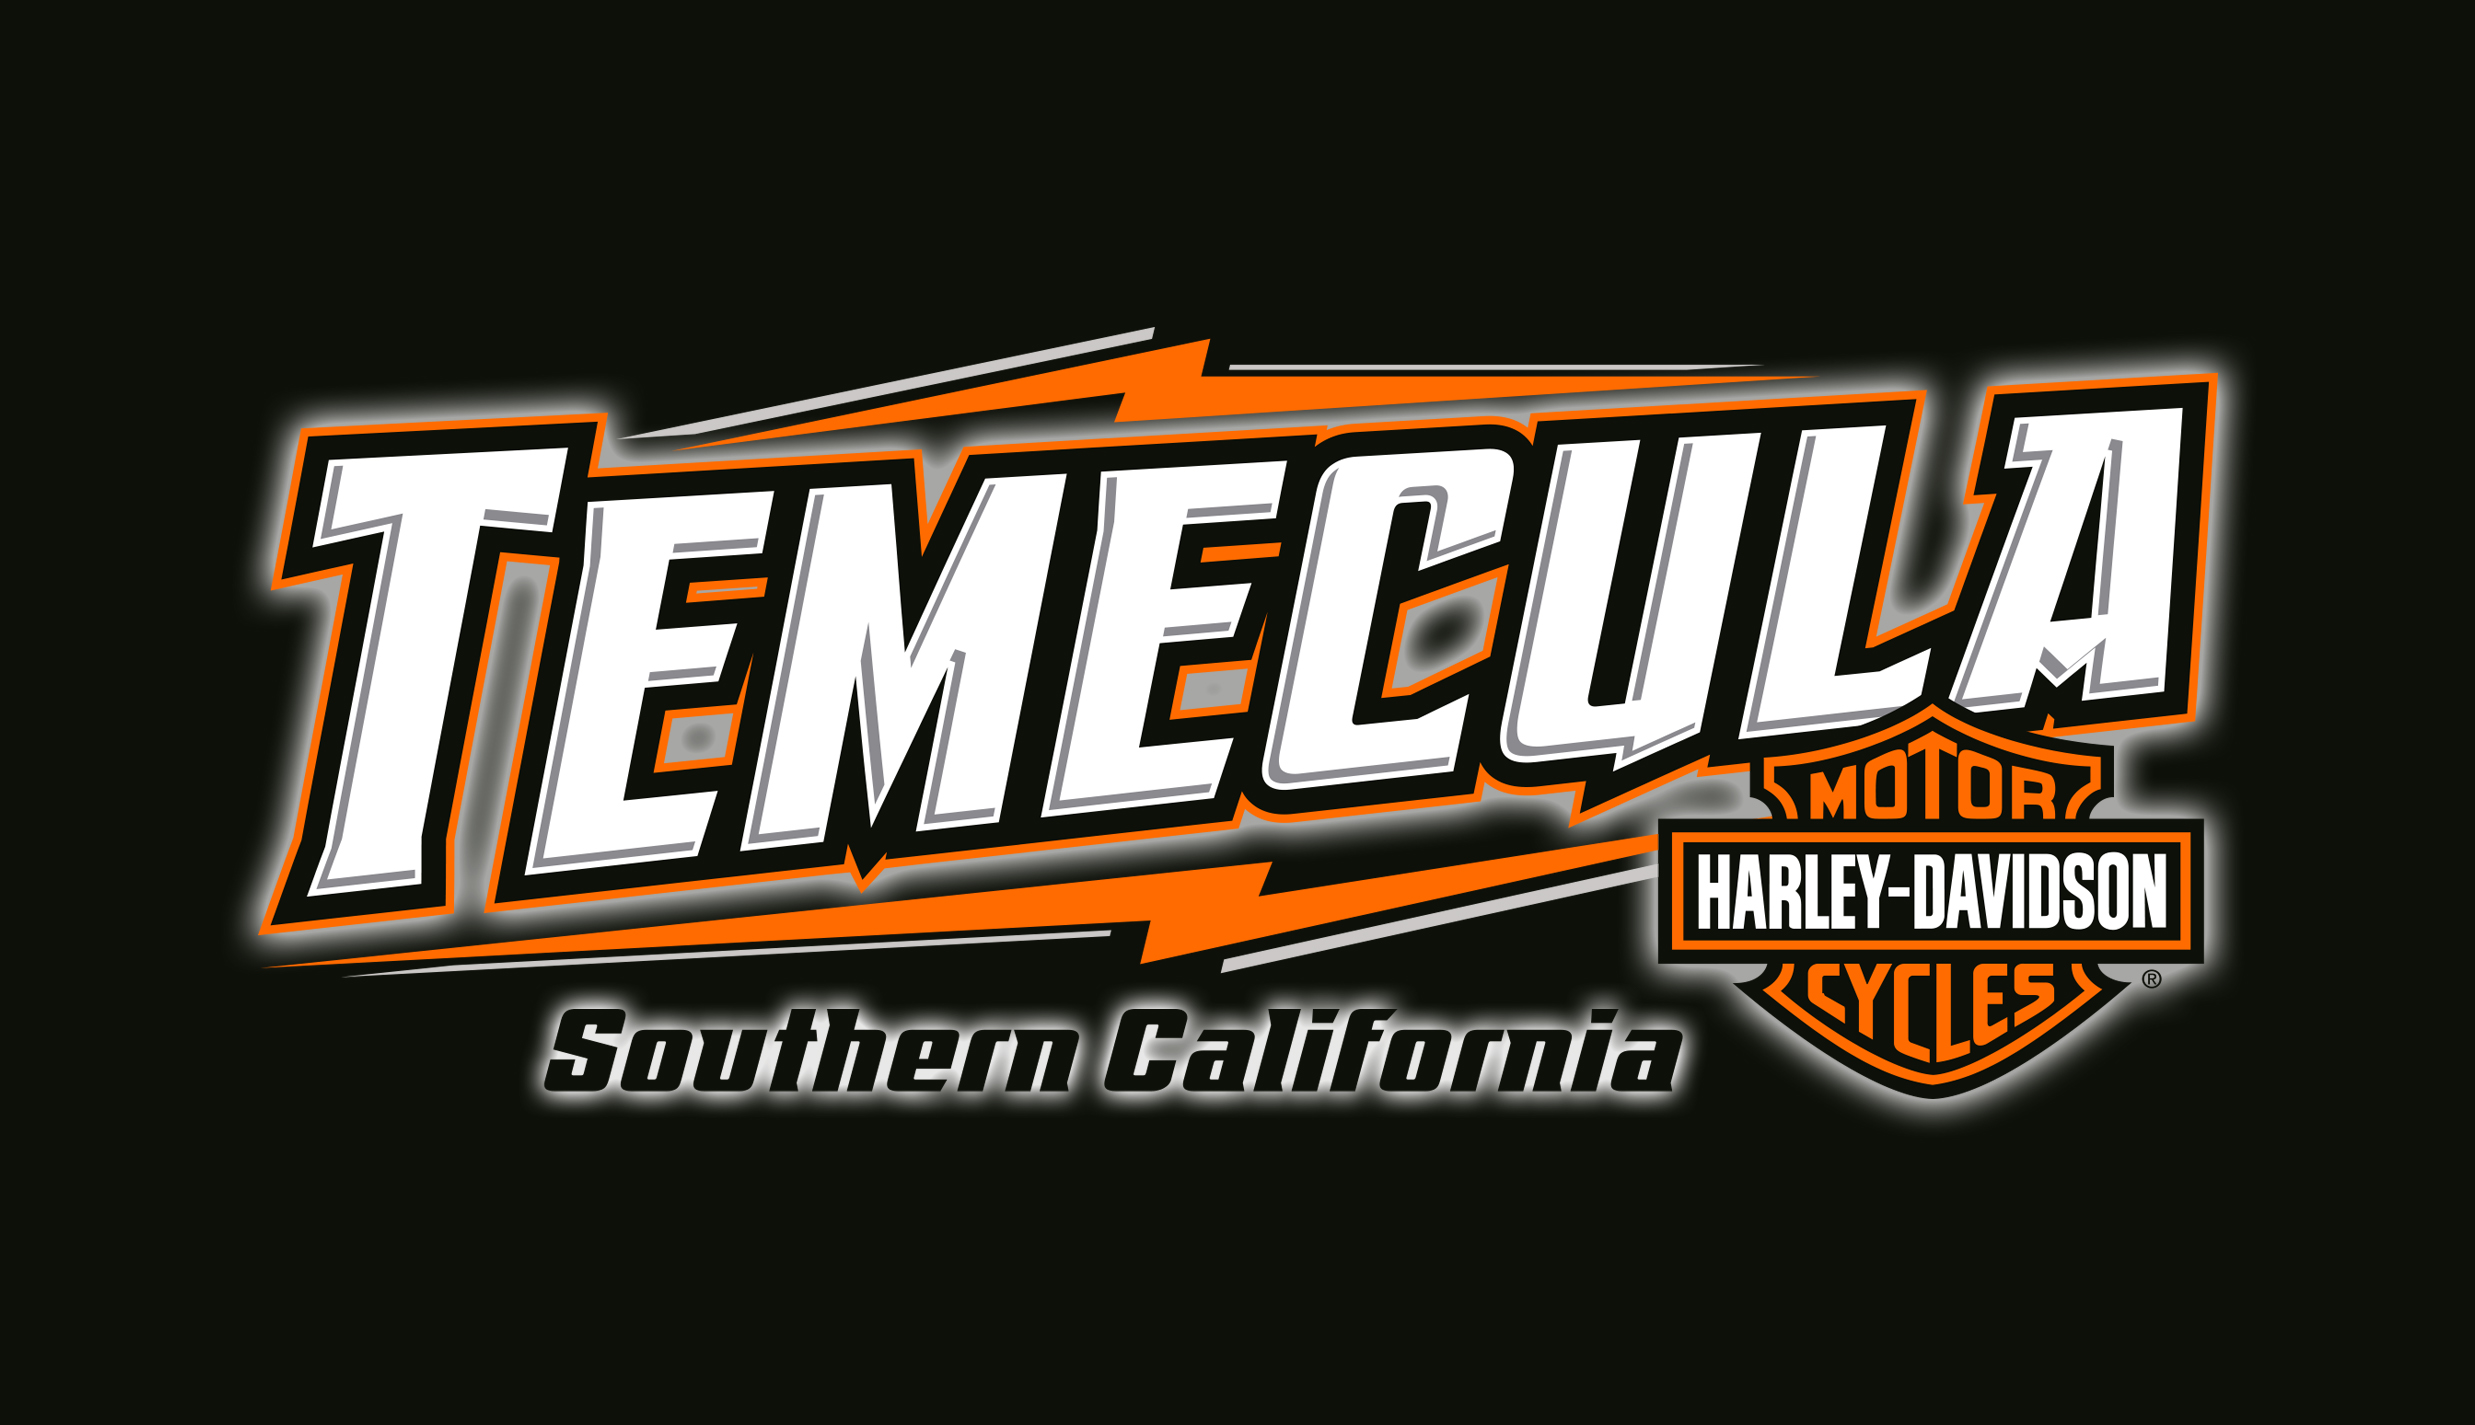 Temecula Harley-Davidson 28964 Old Town Front St, Temecula, CA 92590